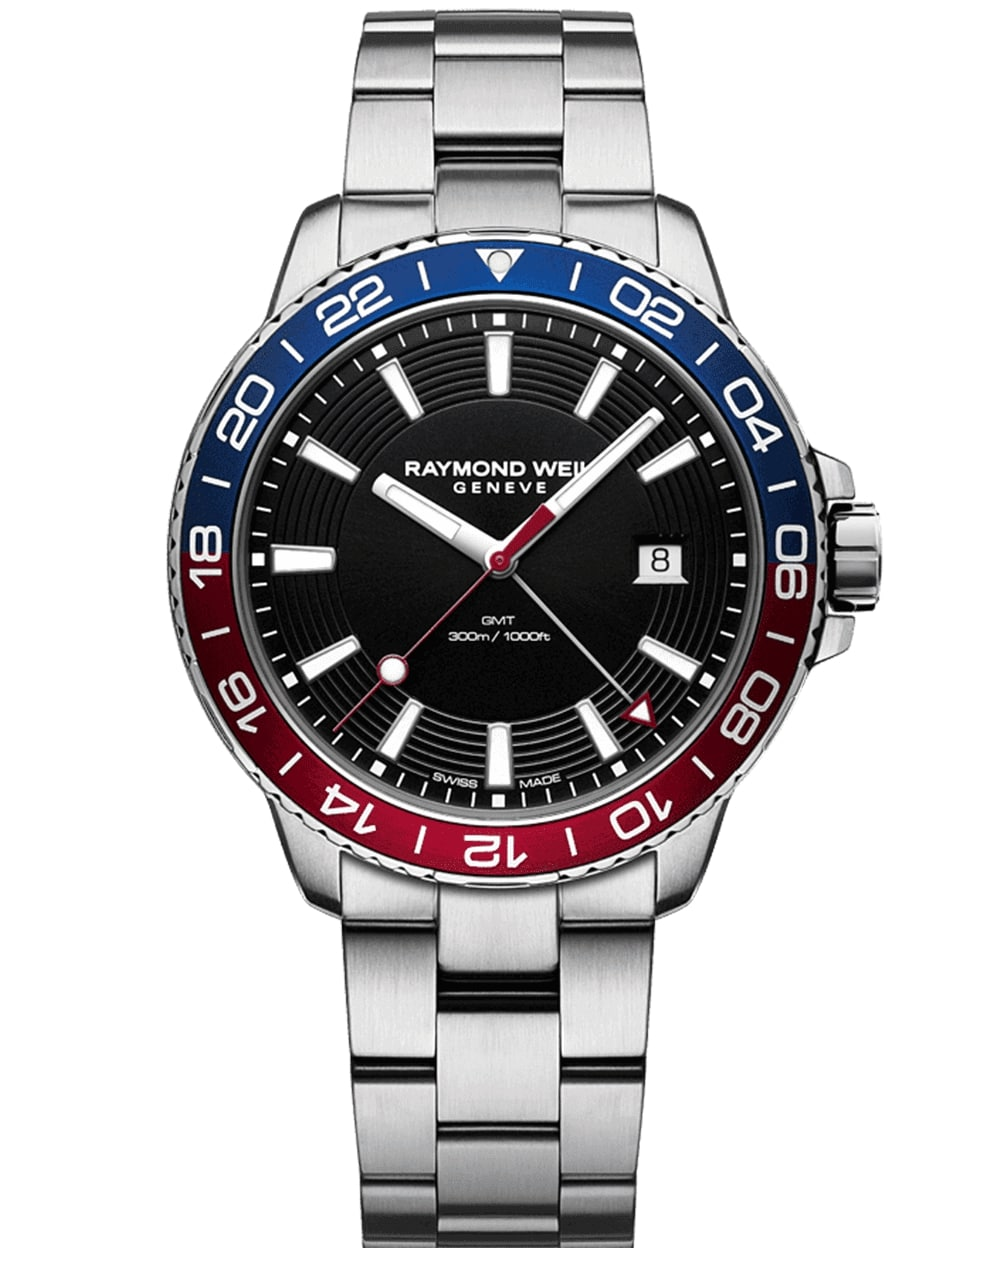 Men's Steel Men's Blue Red Diver Watch